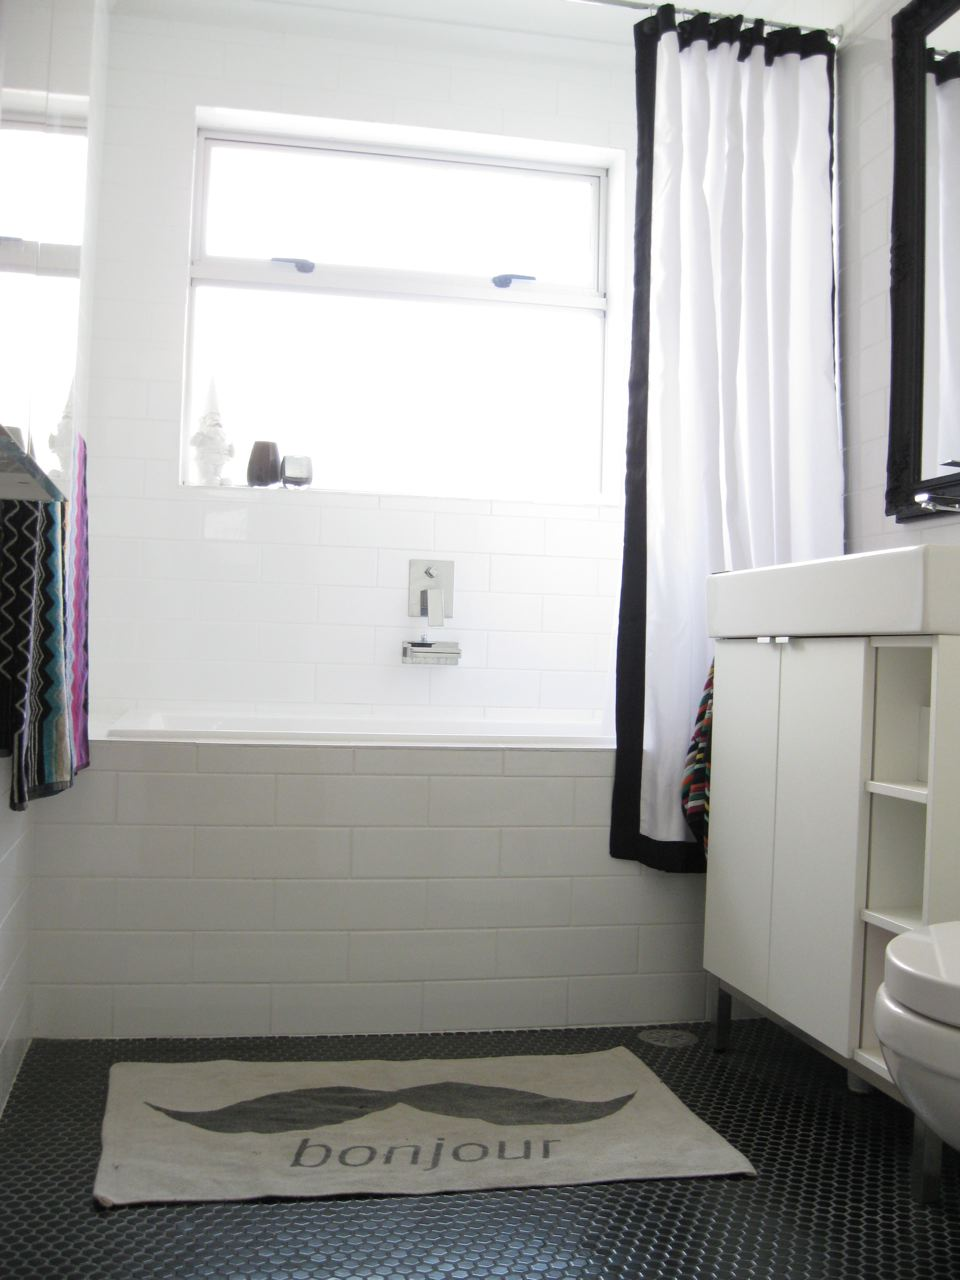 Before & After: The Main Bathroom